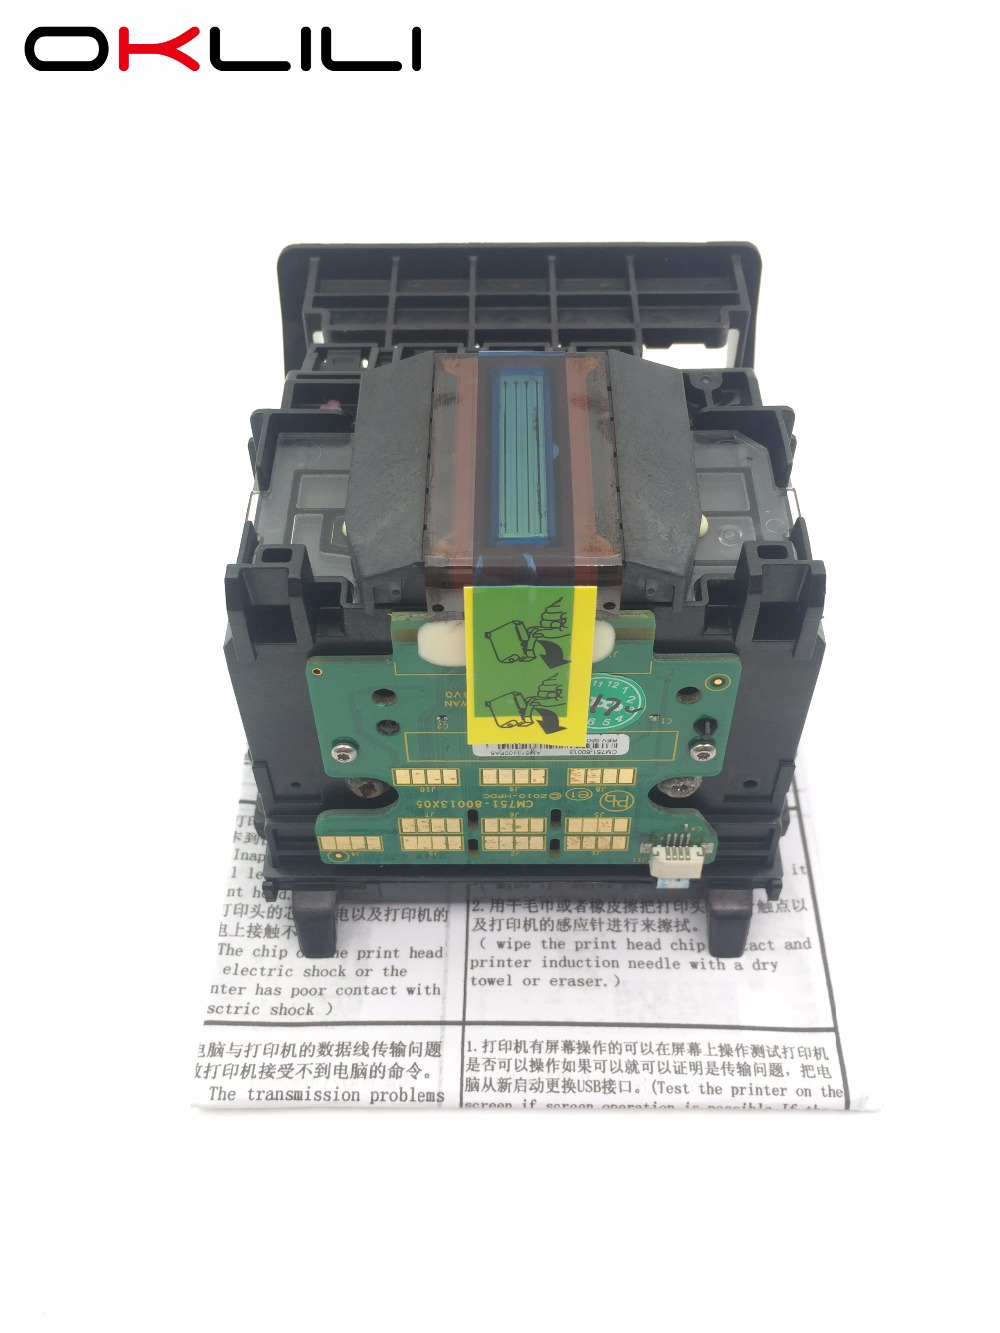 CM751-80013A 950 951 950XL 951XL Printhead Print head for HP Pro 8100 8600 Plus 8610 8620 8625 8630 8700 Pro 251DW 251 276 276DW 950 printhead for hp950 print head for hp officejet pro 8100 8600 8610 8620 8630 8640 8660 8615 8625 251dw 276dw printer